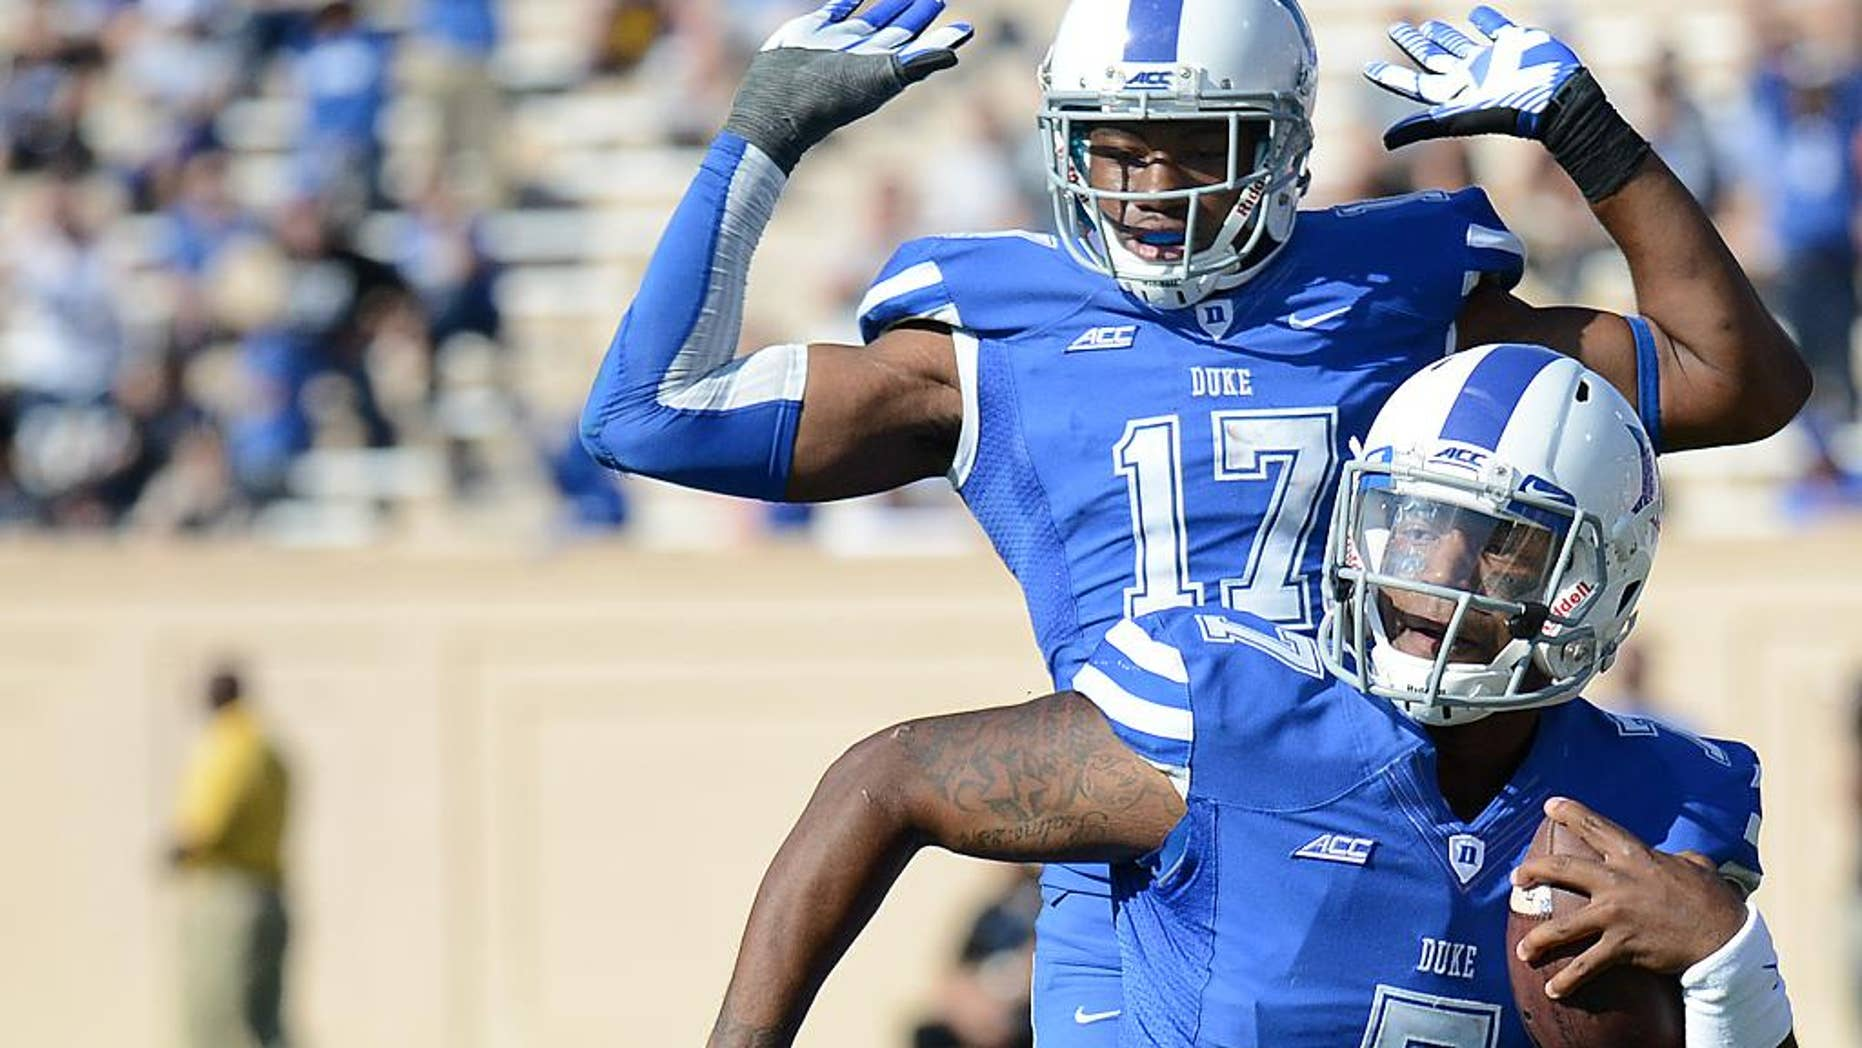 FILE - In this Oct. 18, 2014, file photo, Duke quarterback Anthony Boone (7) runs past Virginia's Brandon Phelps (21) for a first down during an NCAA college football game in Durham, N.C. Maybe Duke really wasn't a one-year wonder in 2013. (AP Photo/The Herald-Sun, Bernard Thomas, File)